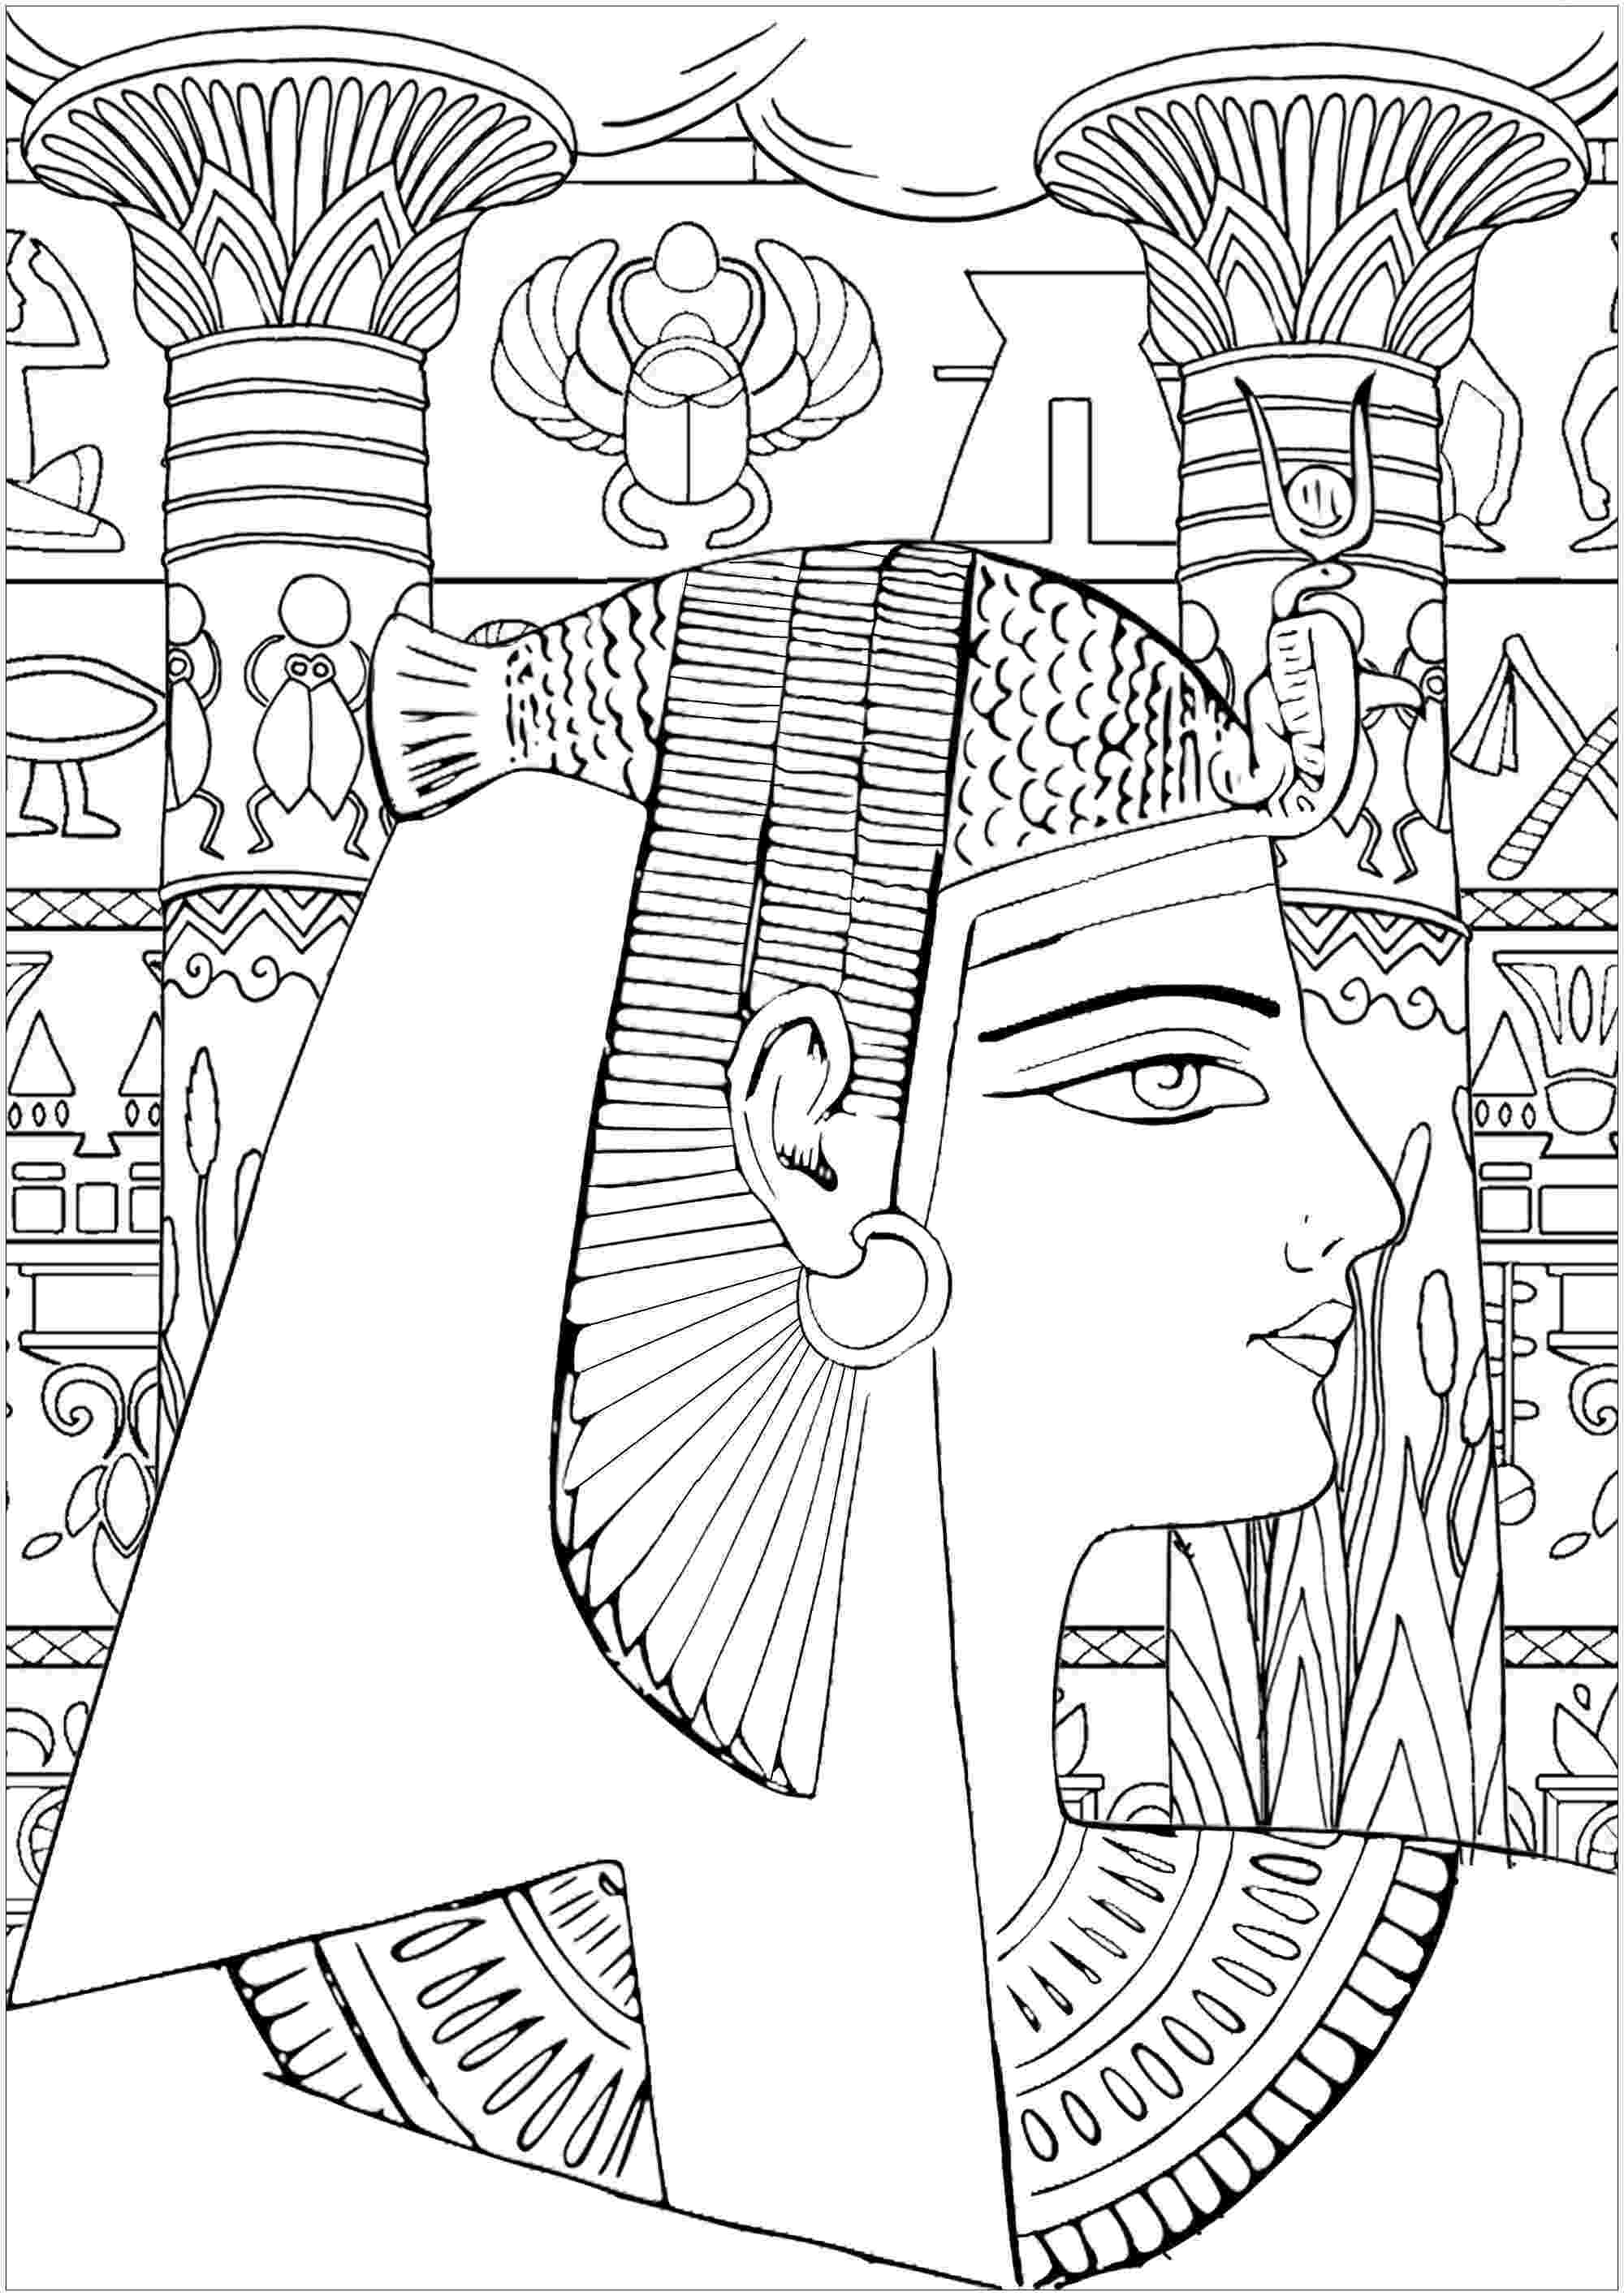 egypt coloring pages ancient egypt coloring pages to download and print for free egypt coloring pages